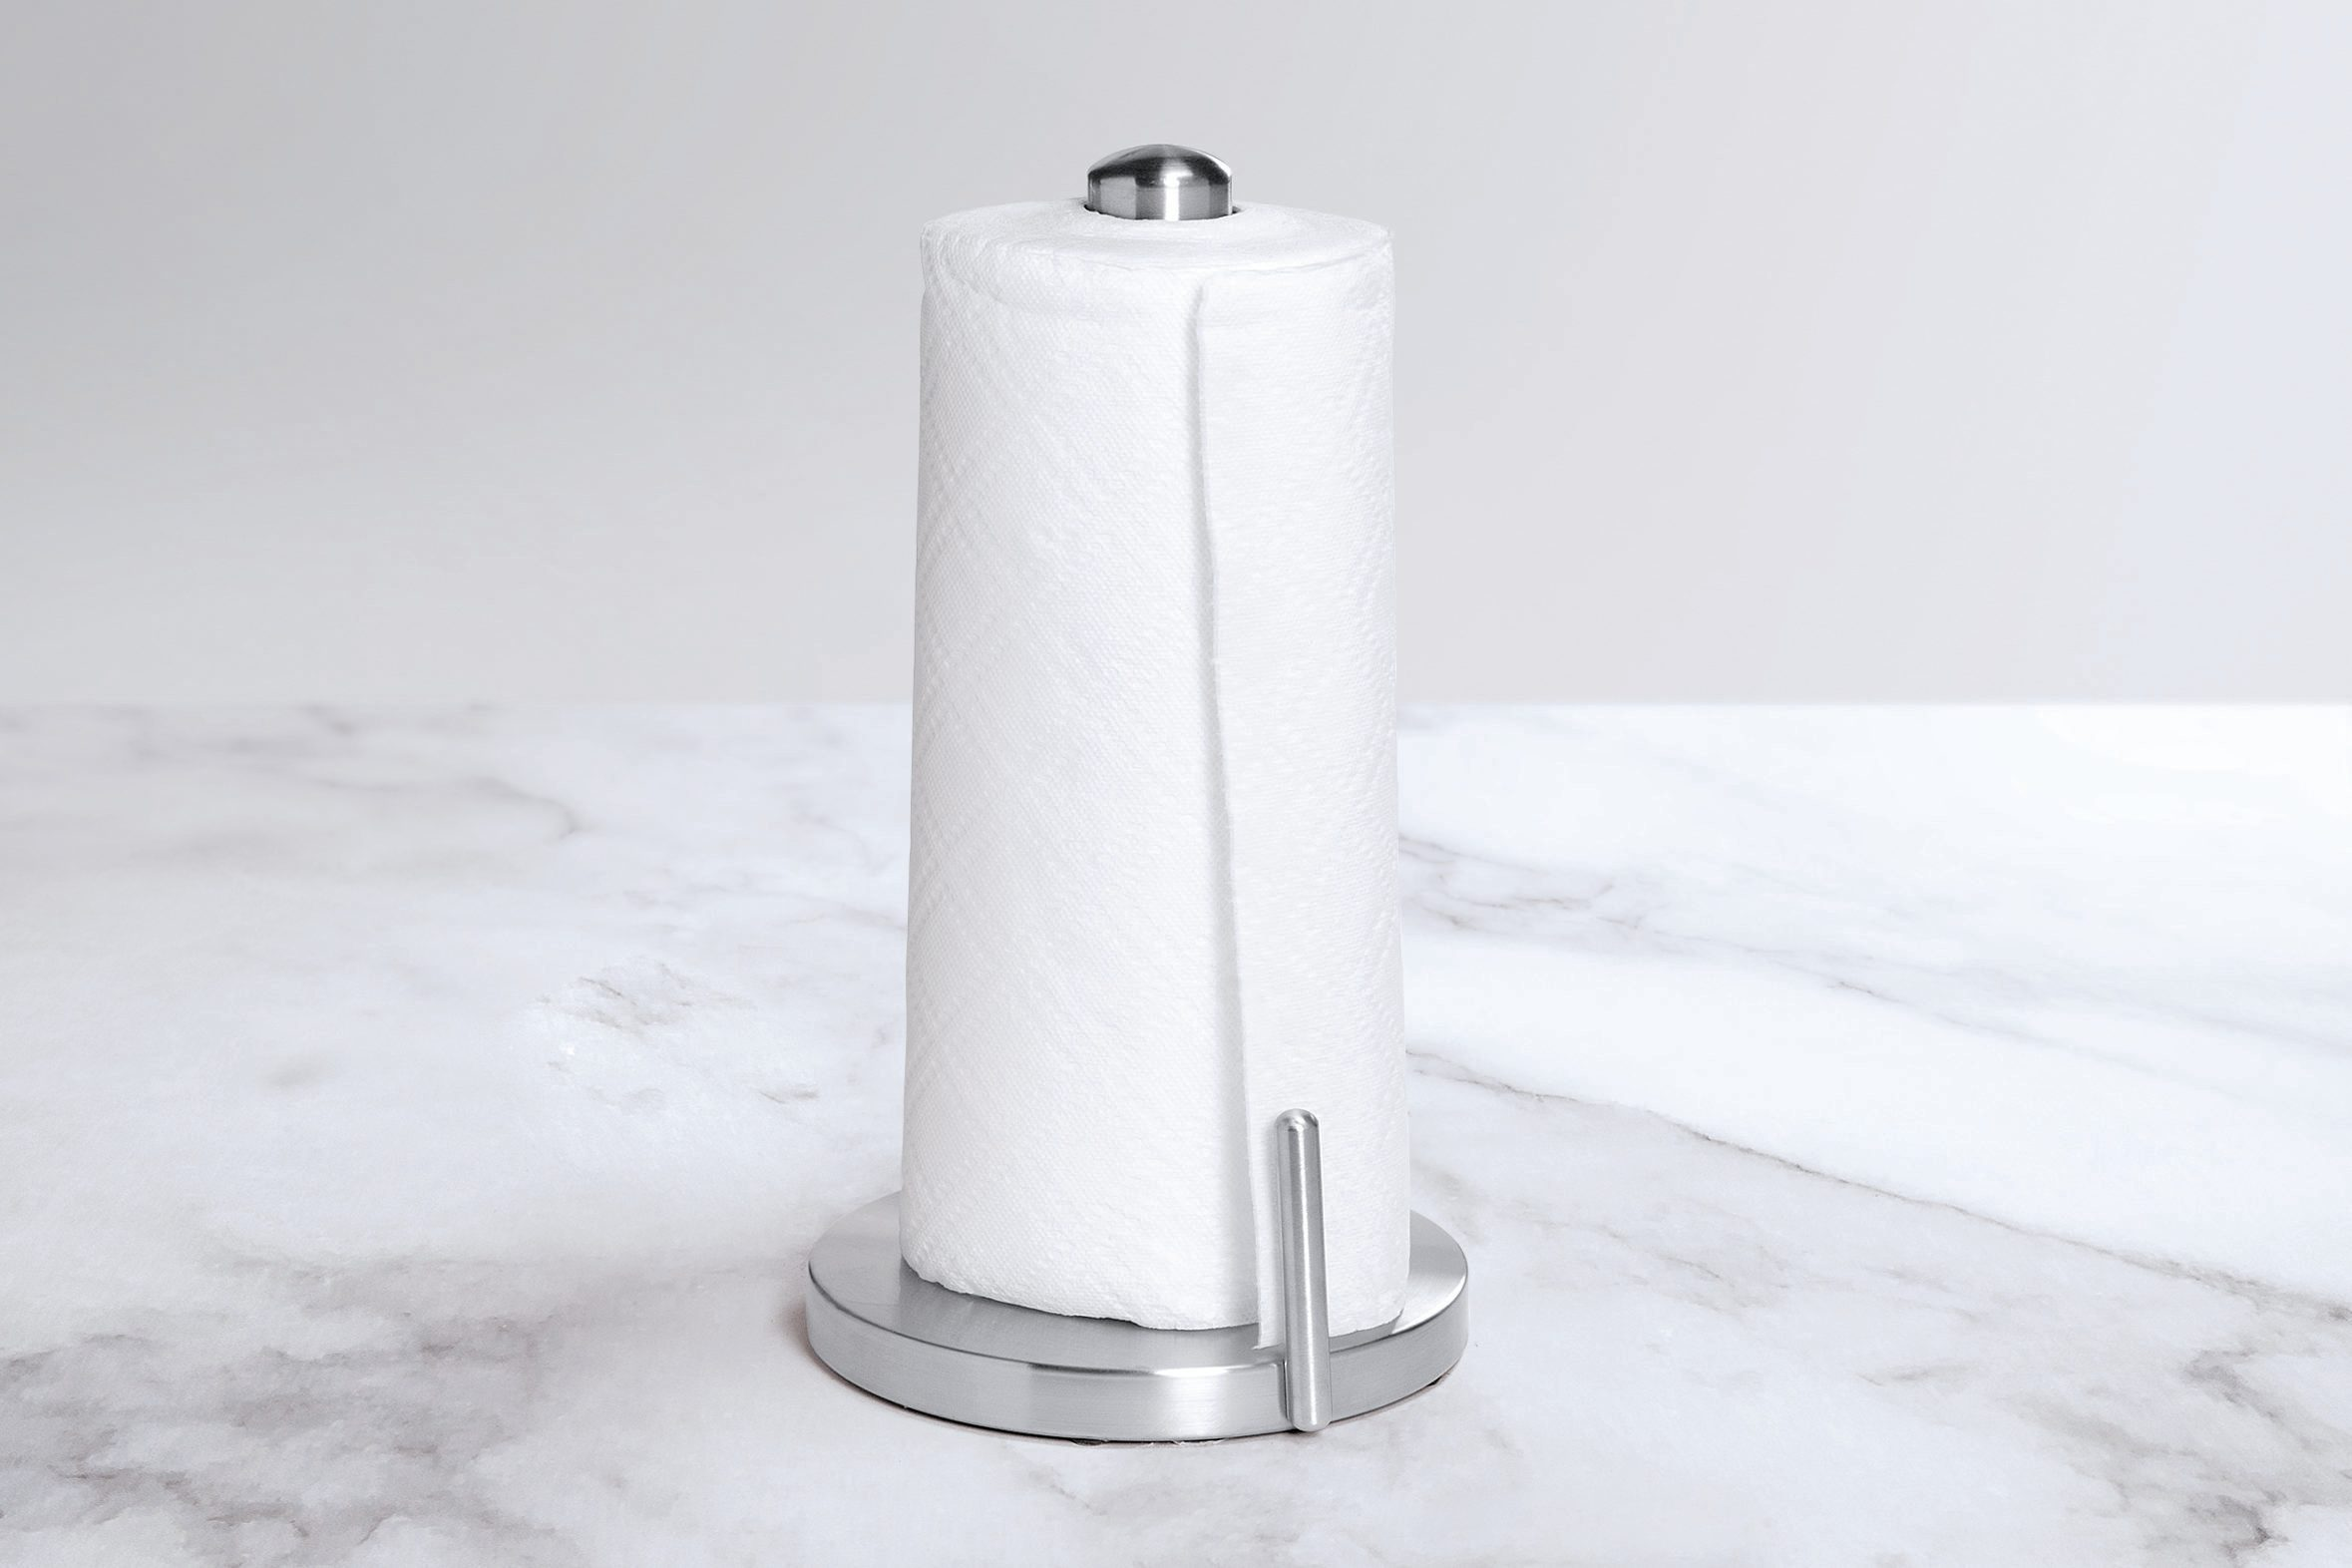 Paper towel holder on a white marble countertop